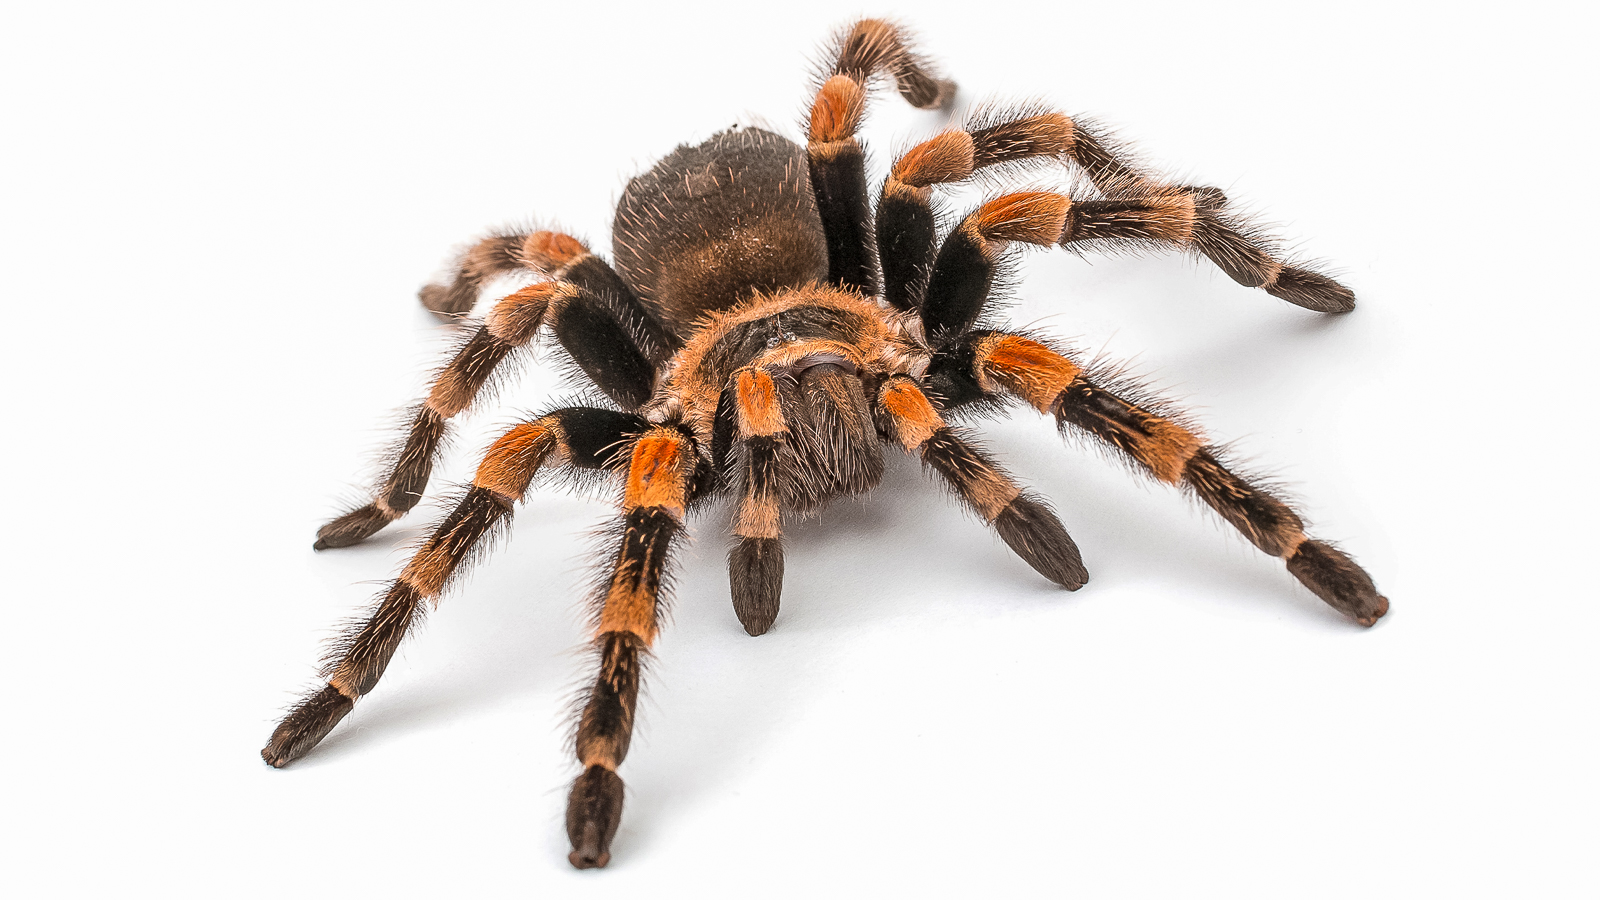 Both human and tarantula muscles contain myosin, which triggers muscle movement. Studying tarantula muscles at the APS can help scientists understand human muscle movement. (Image by Pets in Frames / Shutterstock.)